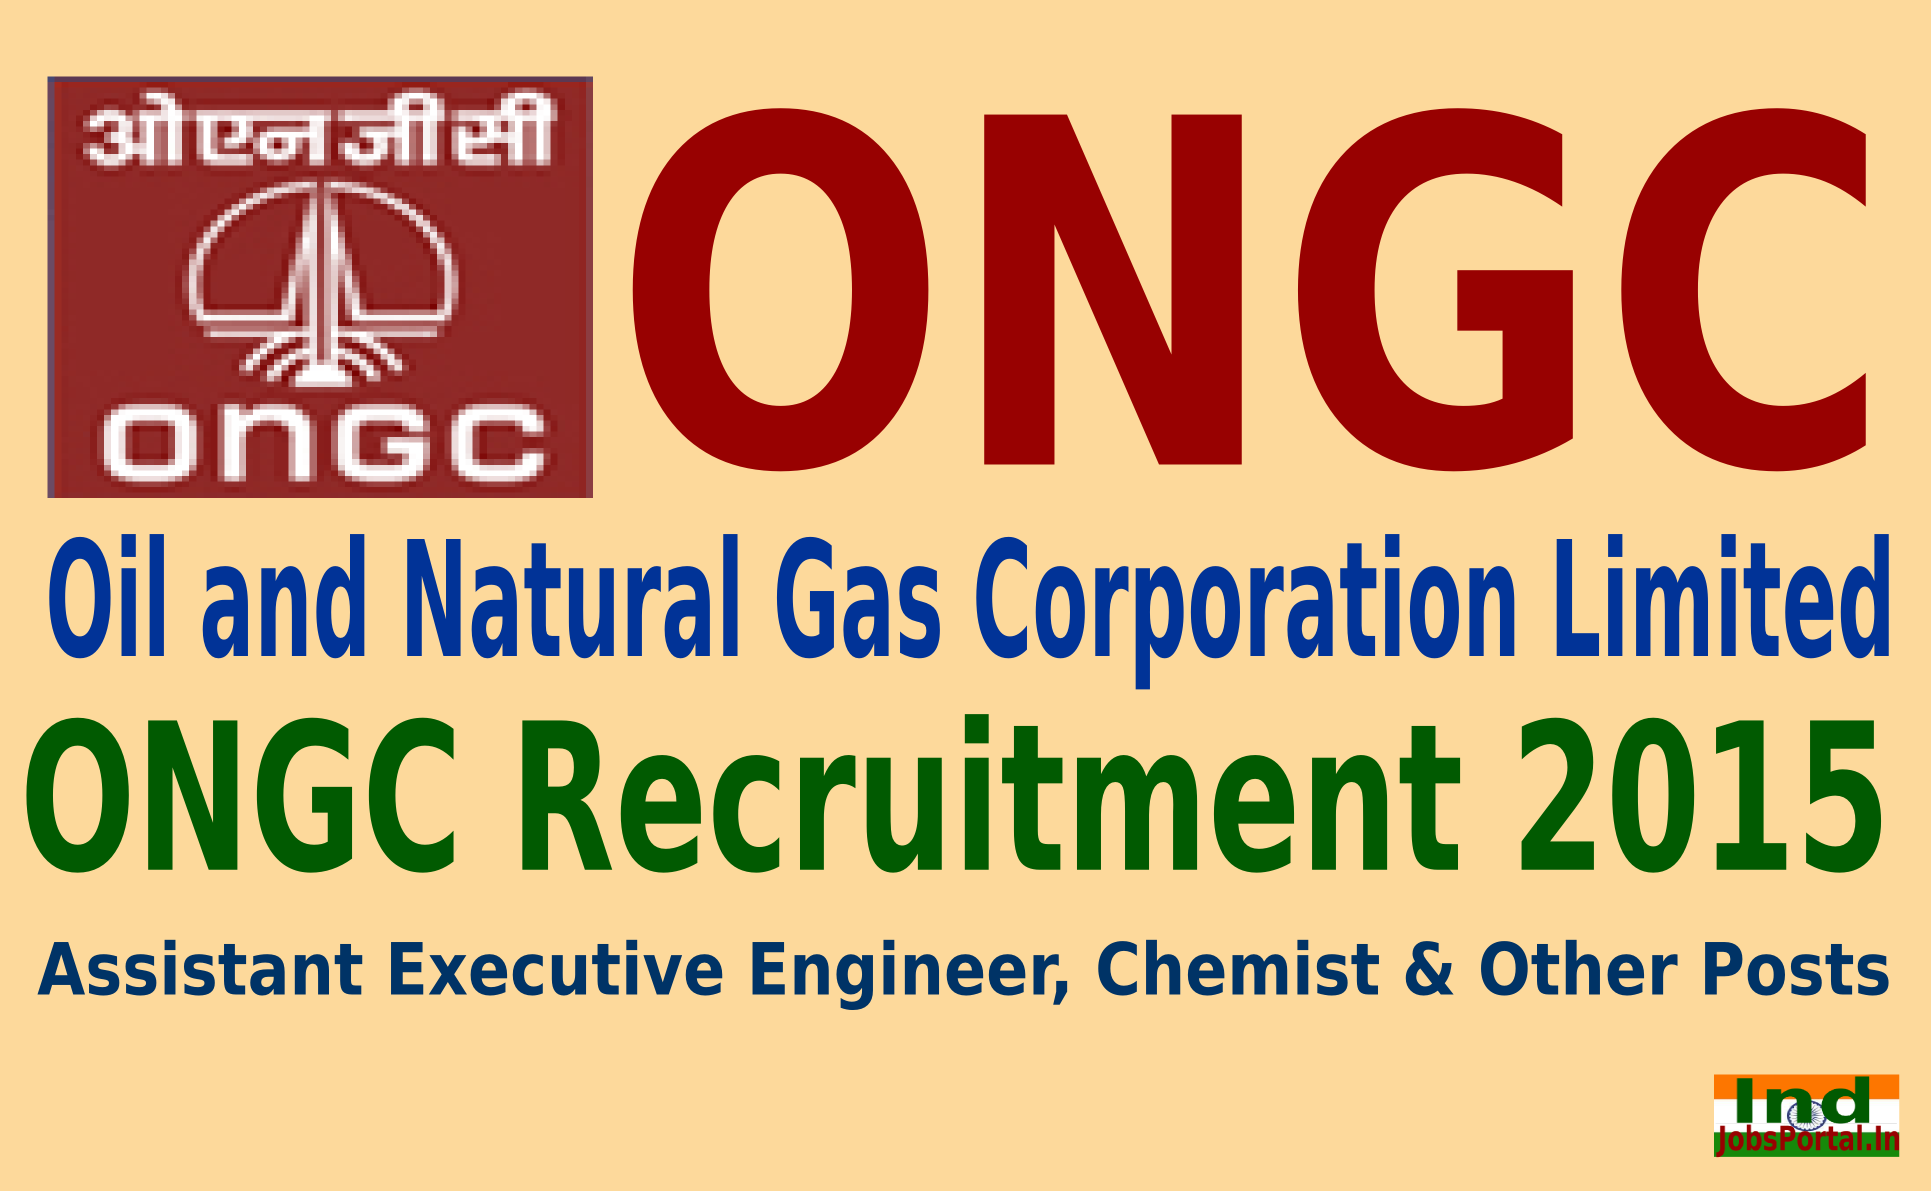 ONGC Recruitment 2015 For 873 Assistant Executive Engineer, Chemist & Other Posts